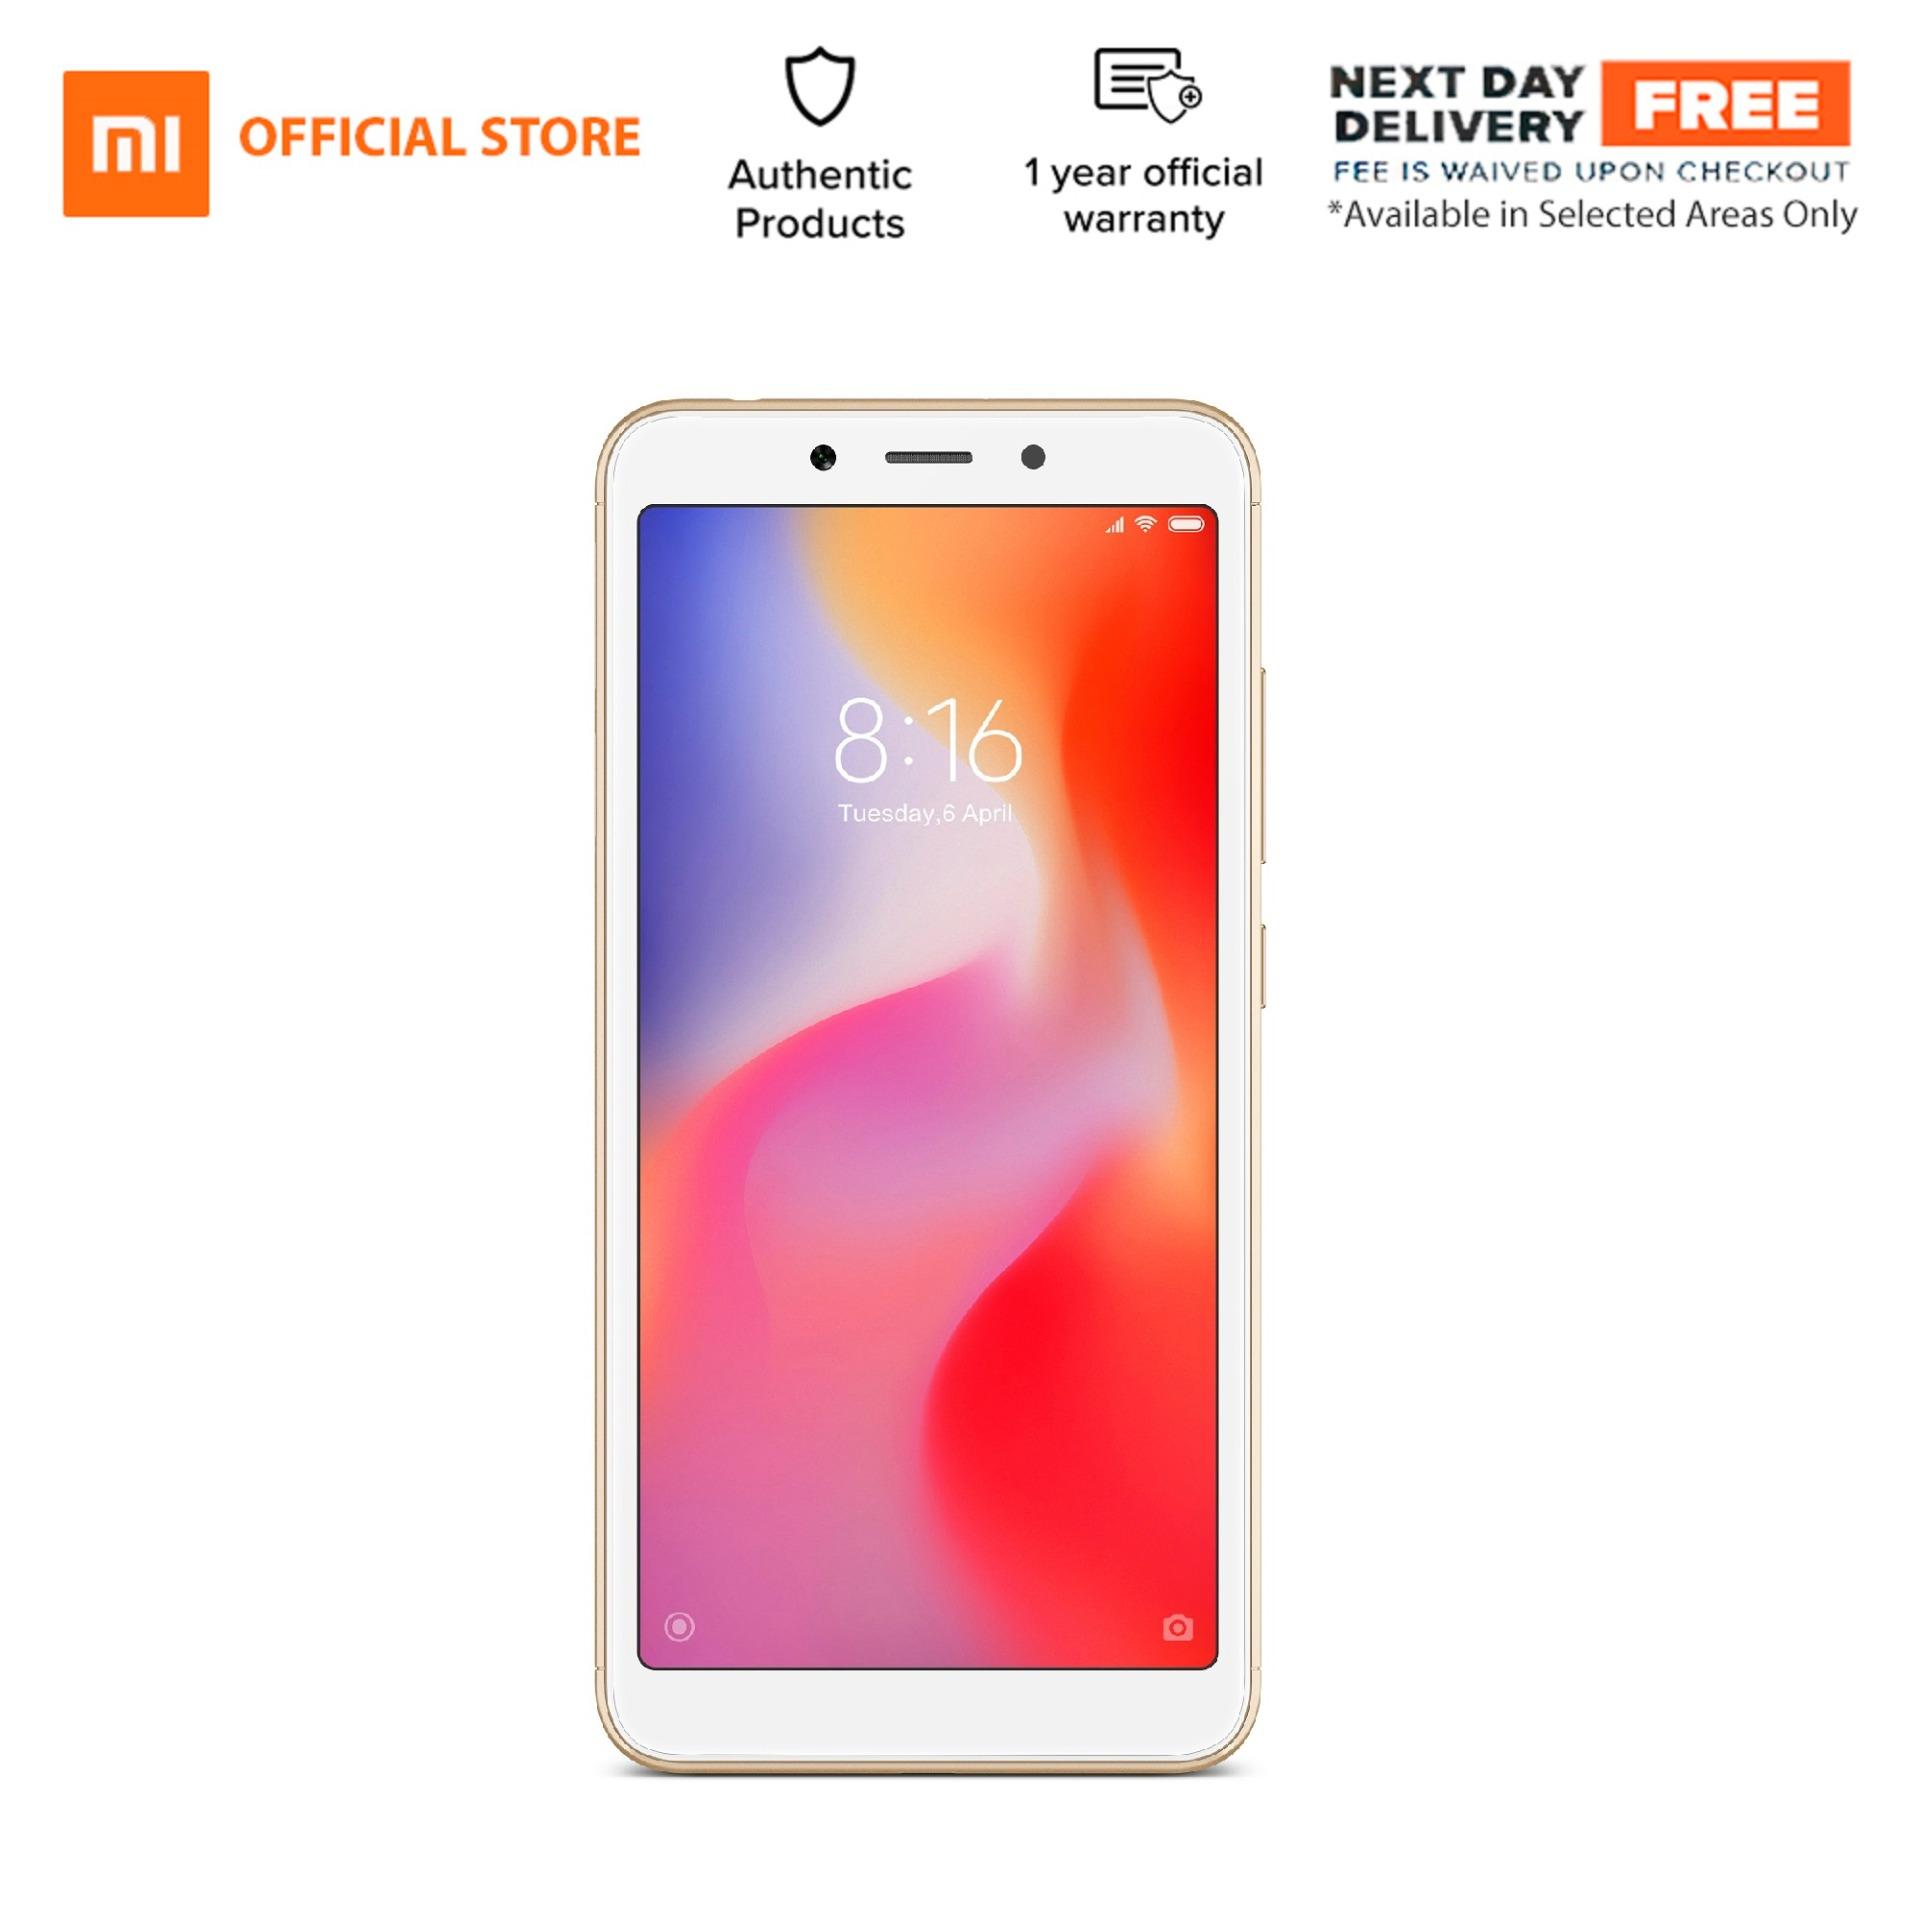 Cheap Xiaomi Phone Products For Sale Lazada Philippines Bestseller Redmi 4x Prime Ram 3gb Internal 32gb 6 4gb 64gb Rom